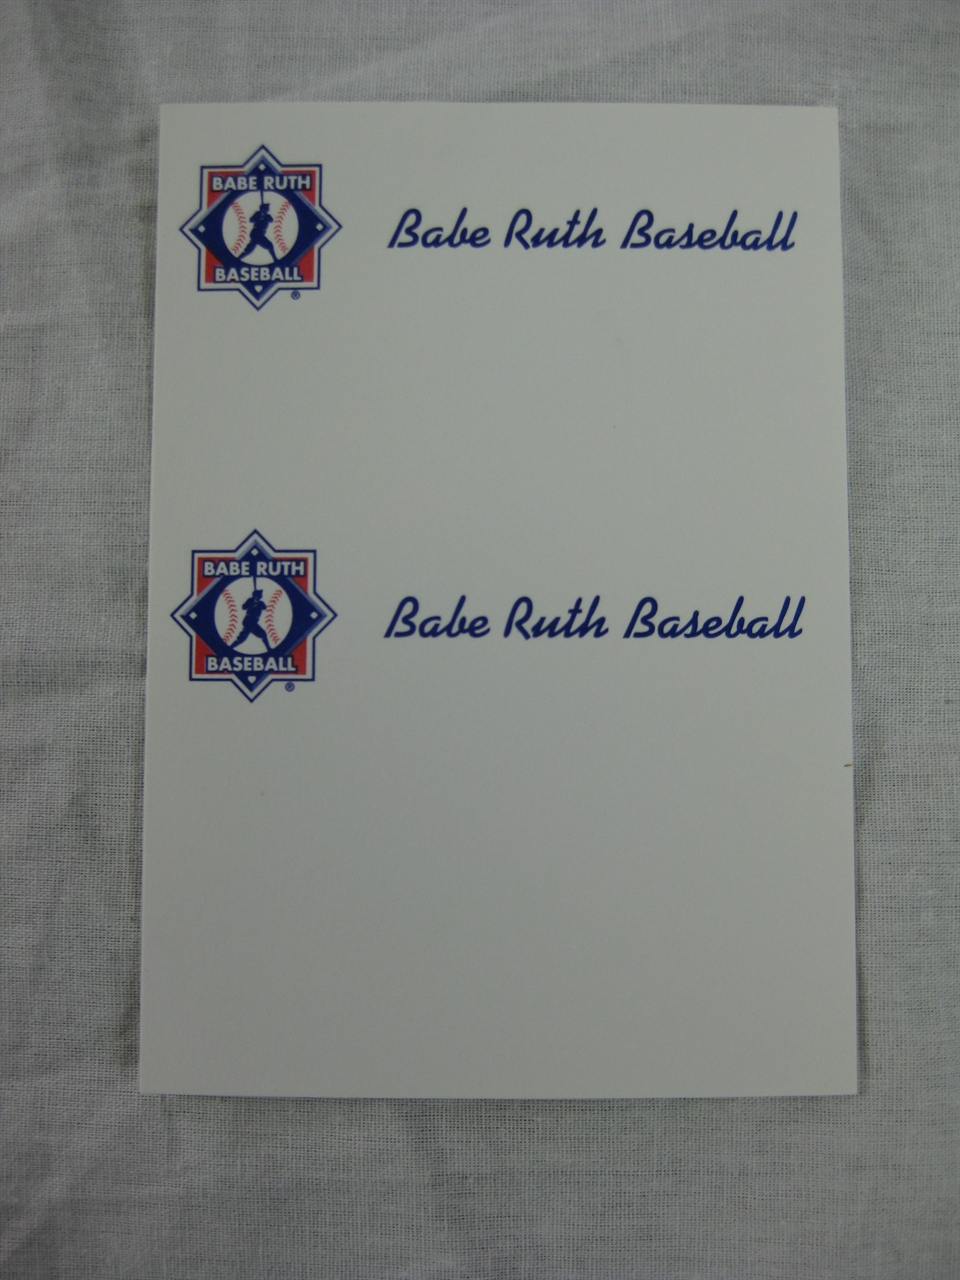 Babe ruth league online store babe ruth baseball business cards picture of babe ruth baseball business cards colourmoves